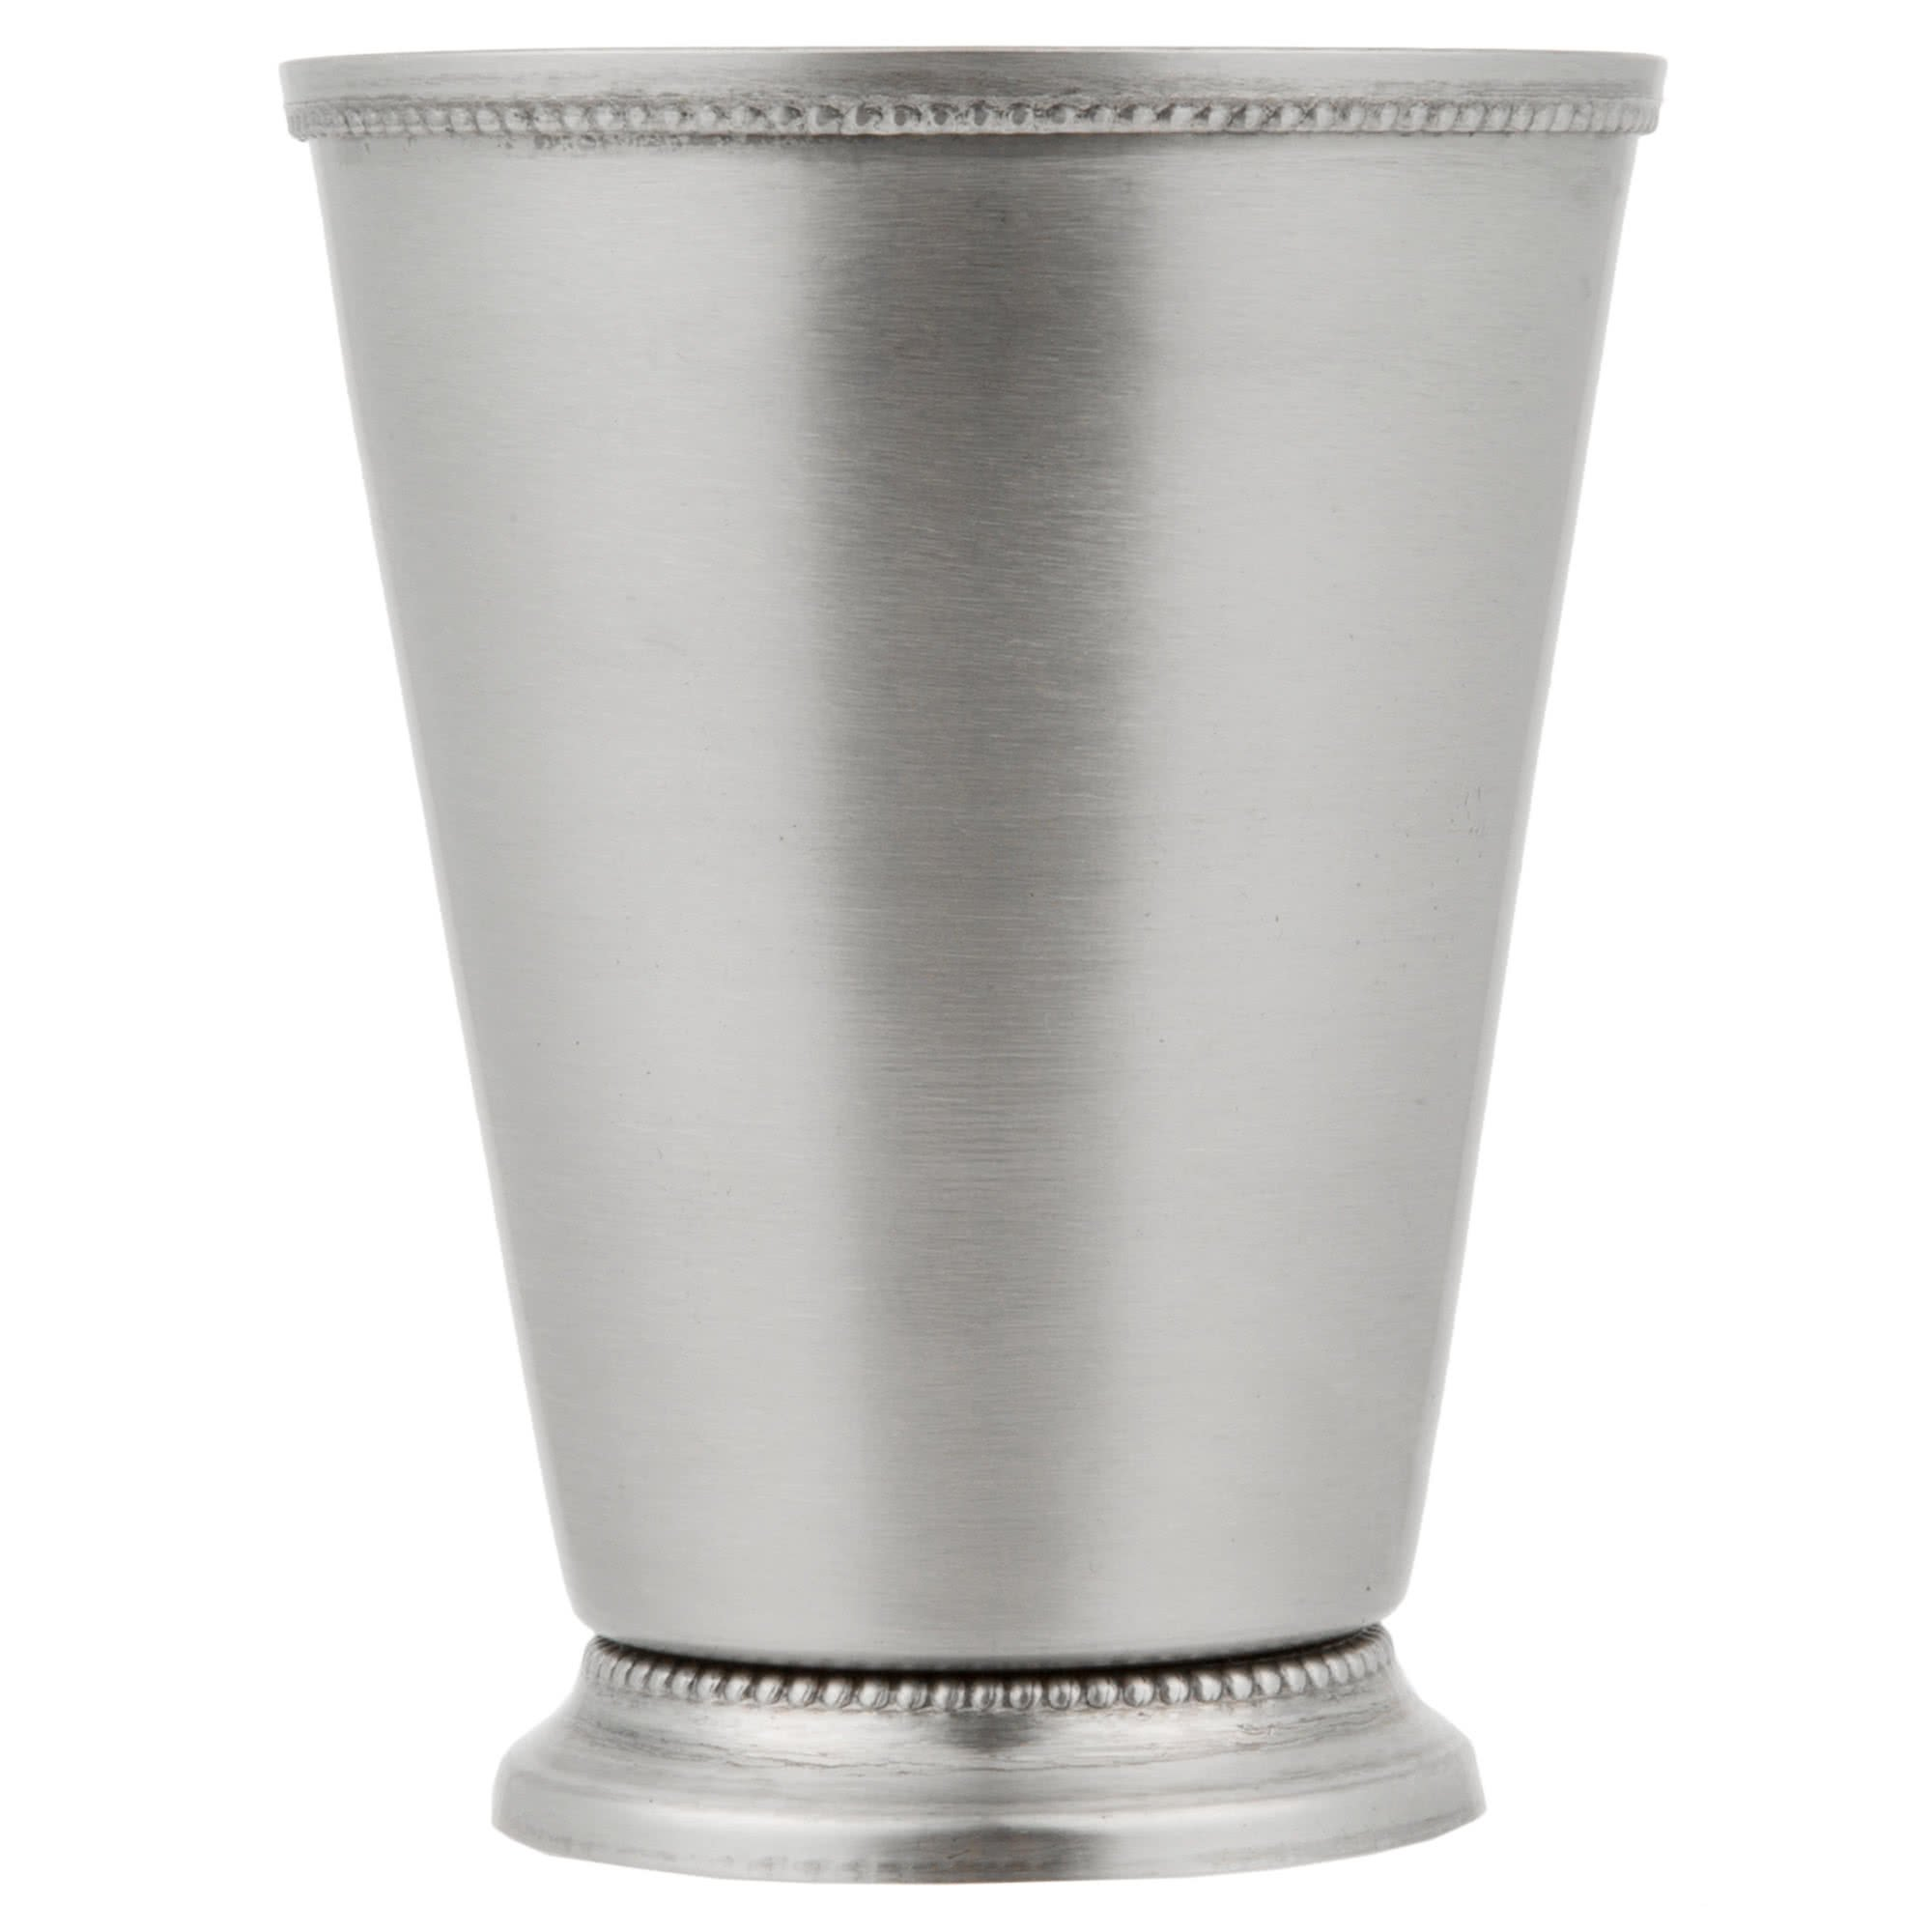 TableTop King 16 oz. Stainless Steel Mint Julep Cup with Smooth Finish and Beaded Detailing - 4/Pack